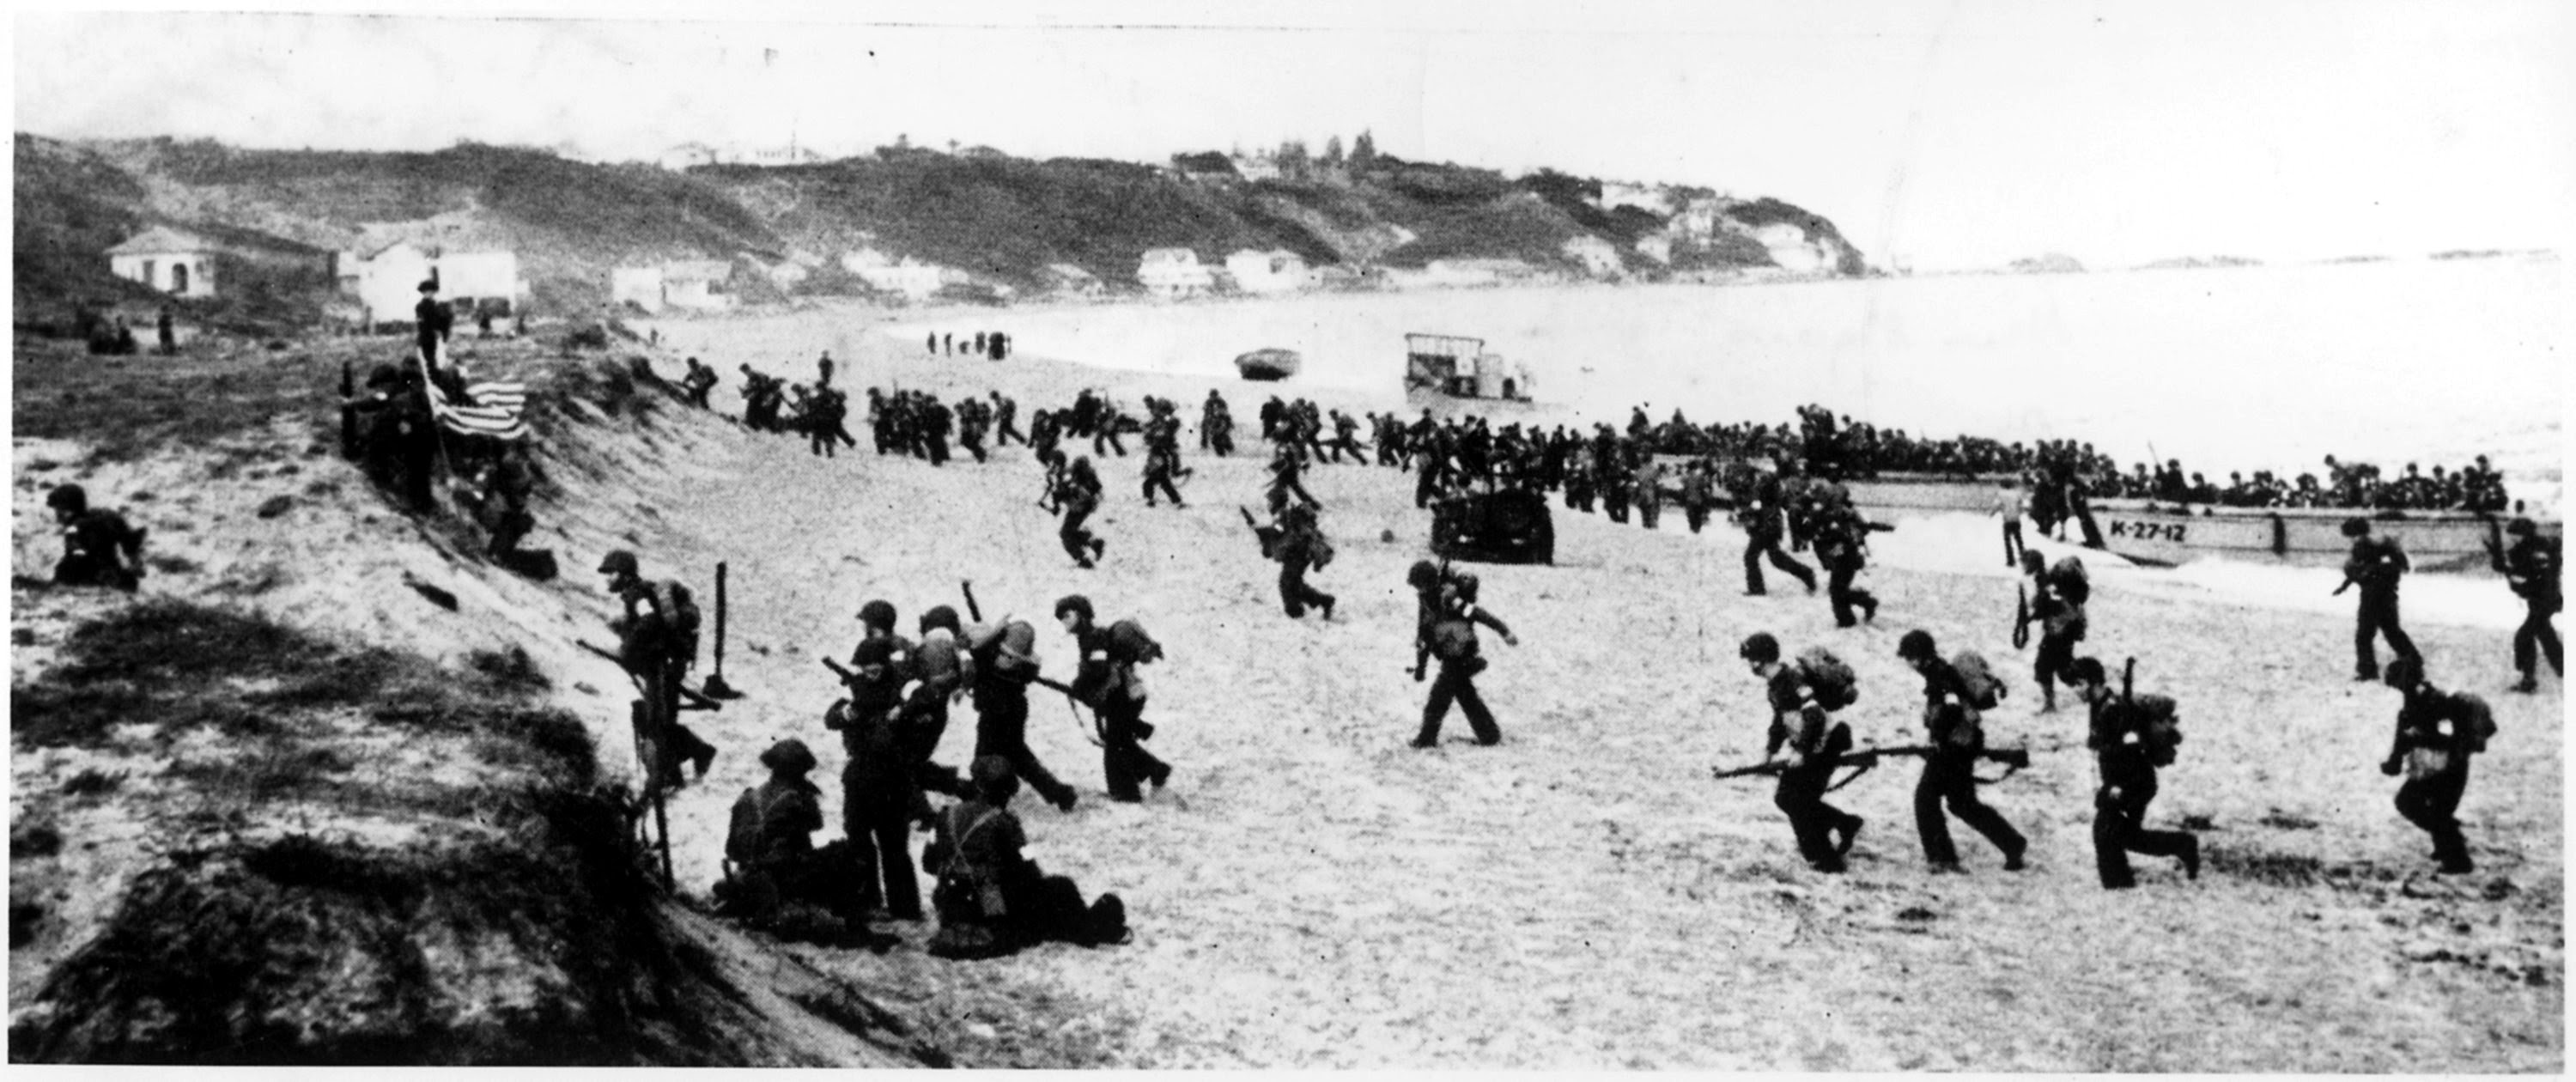 Operation Torch troops hit the beaches